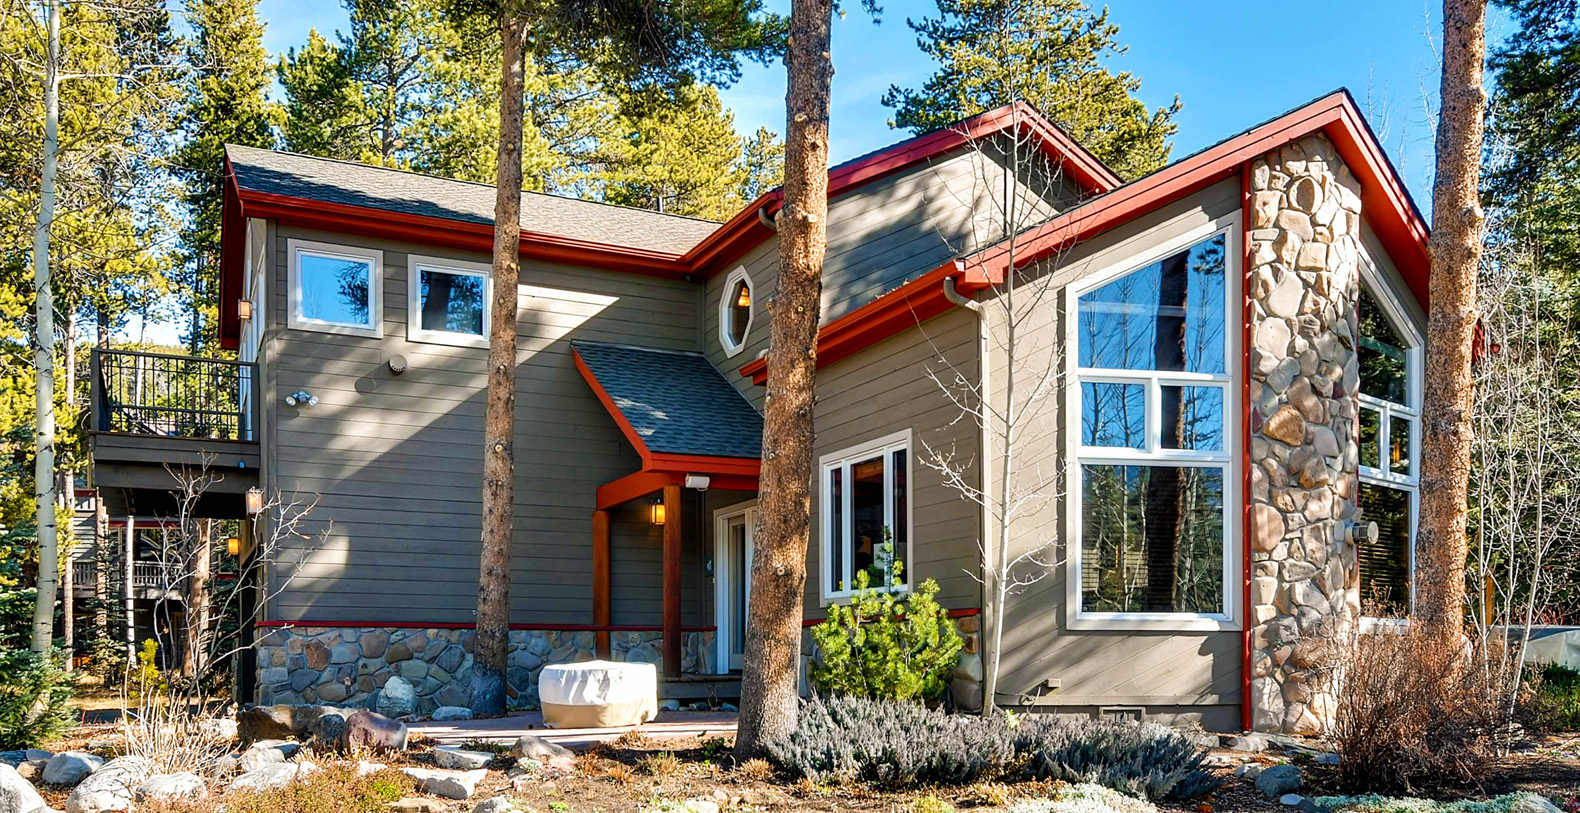 Foxtail gardens breckenridge holiday letting vacation for Cabin rentals breckenridge